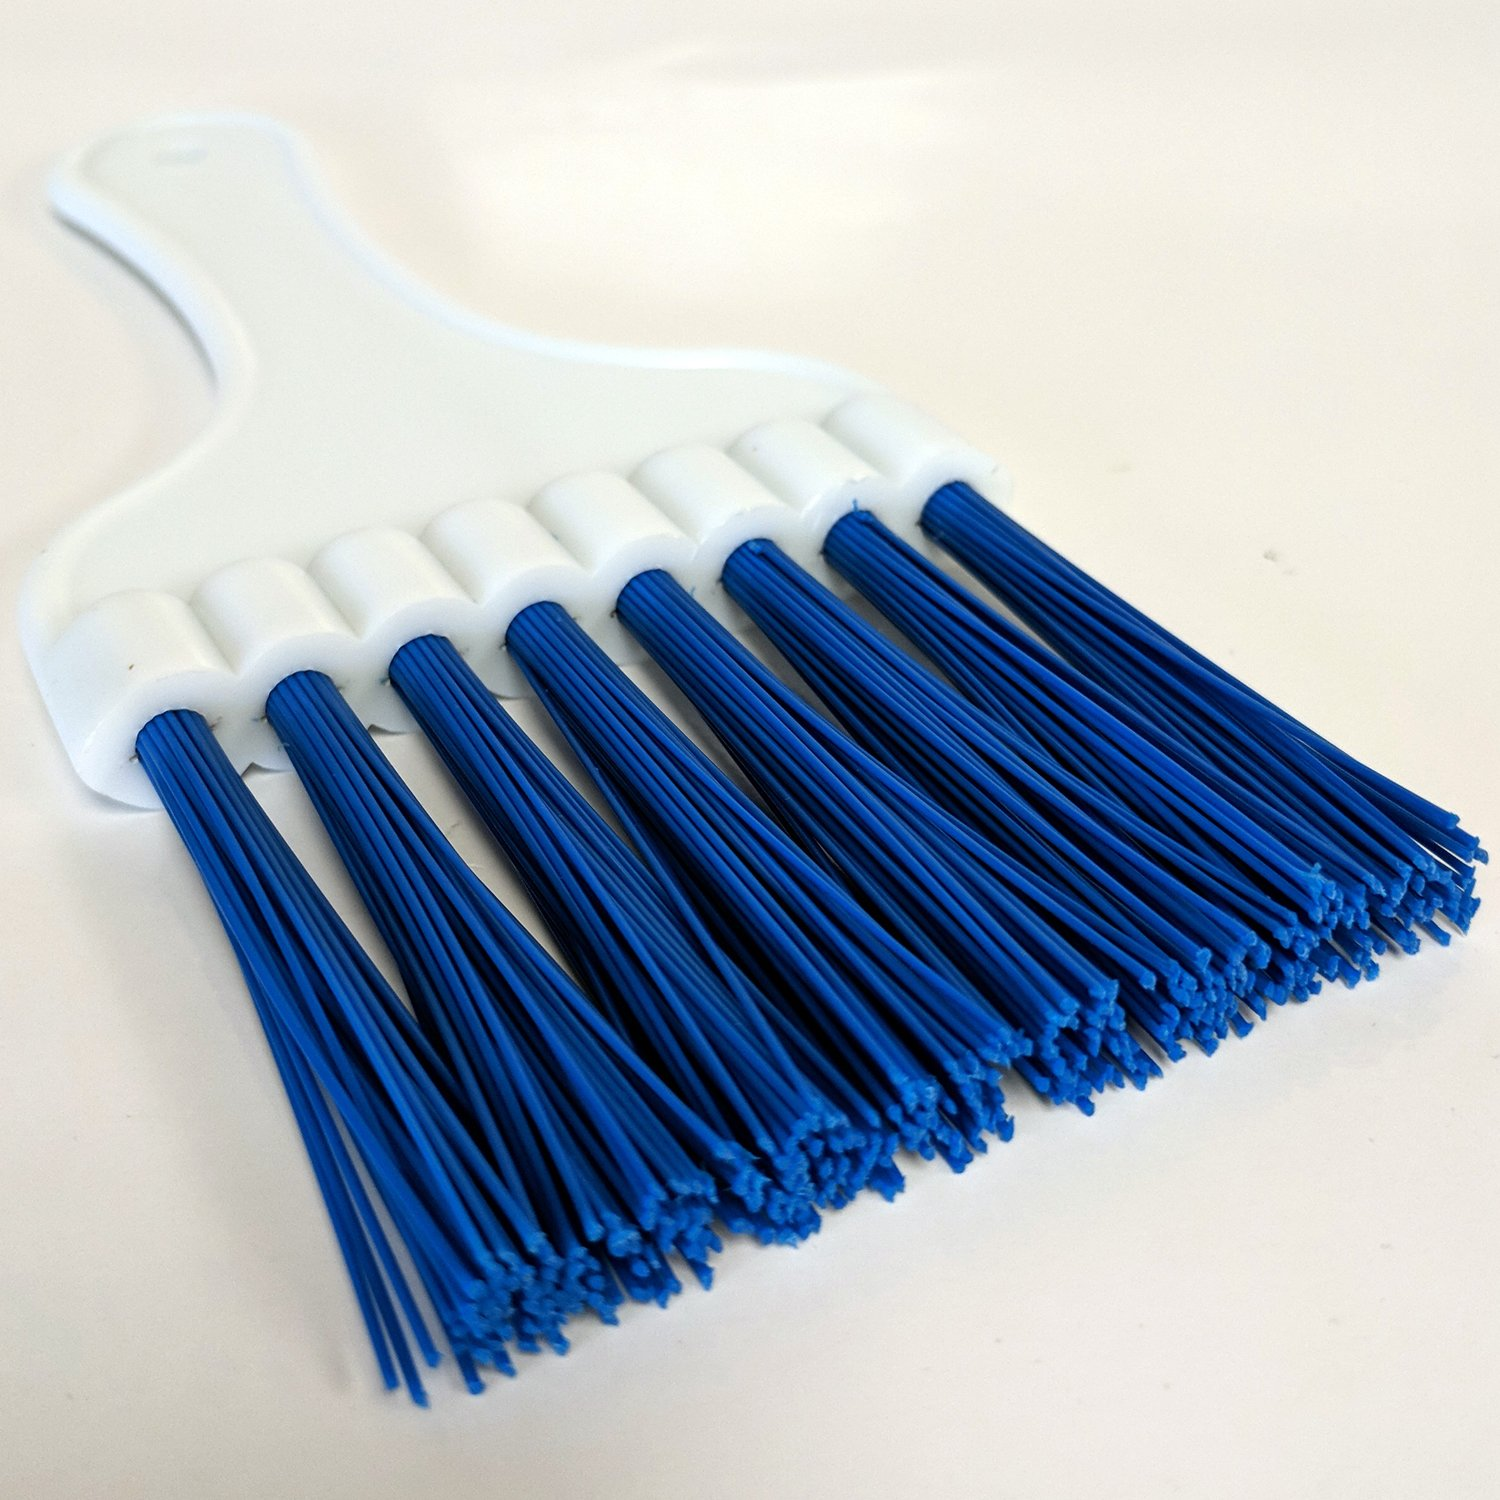 Amazon.com: Air Conditioner Condenser Fin and Refrigerator Coil Cleaning Whisk Brush: Health & Personal Care